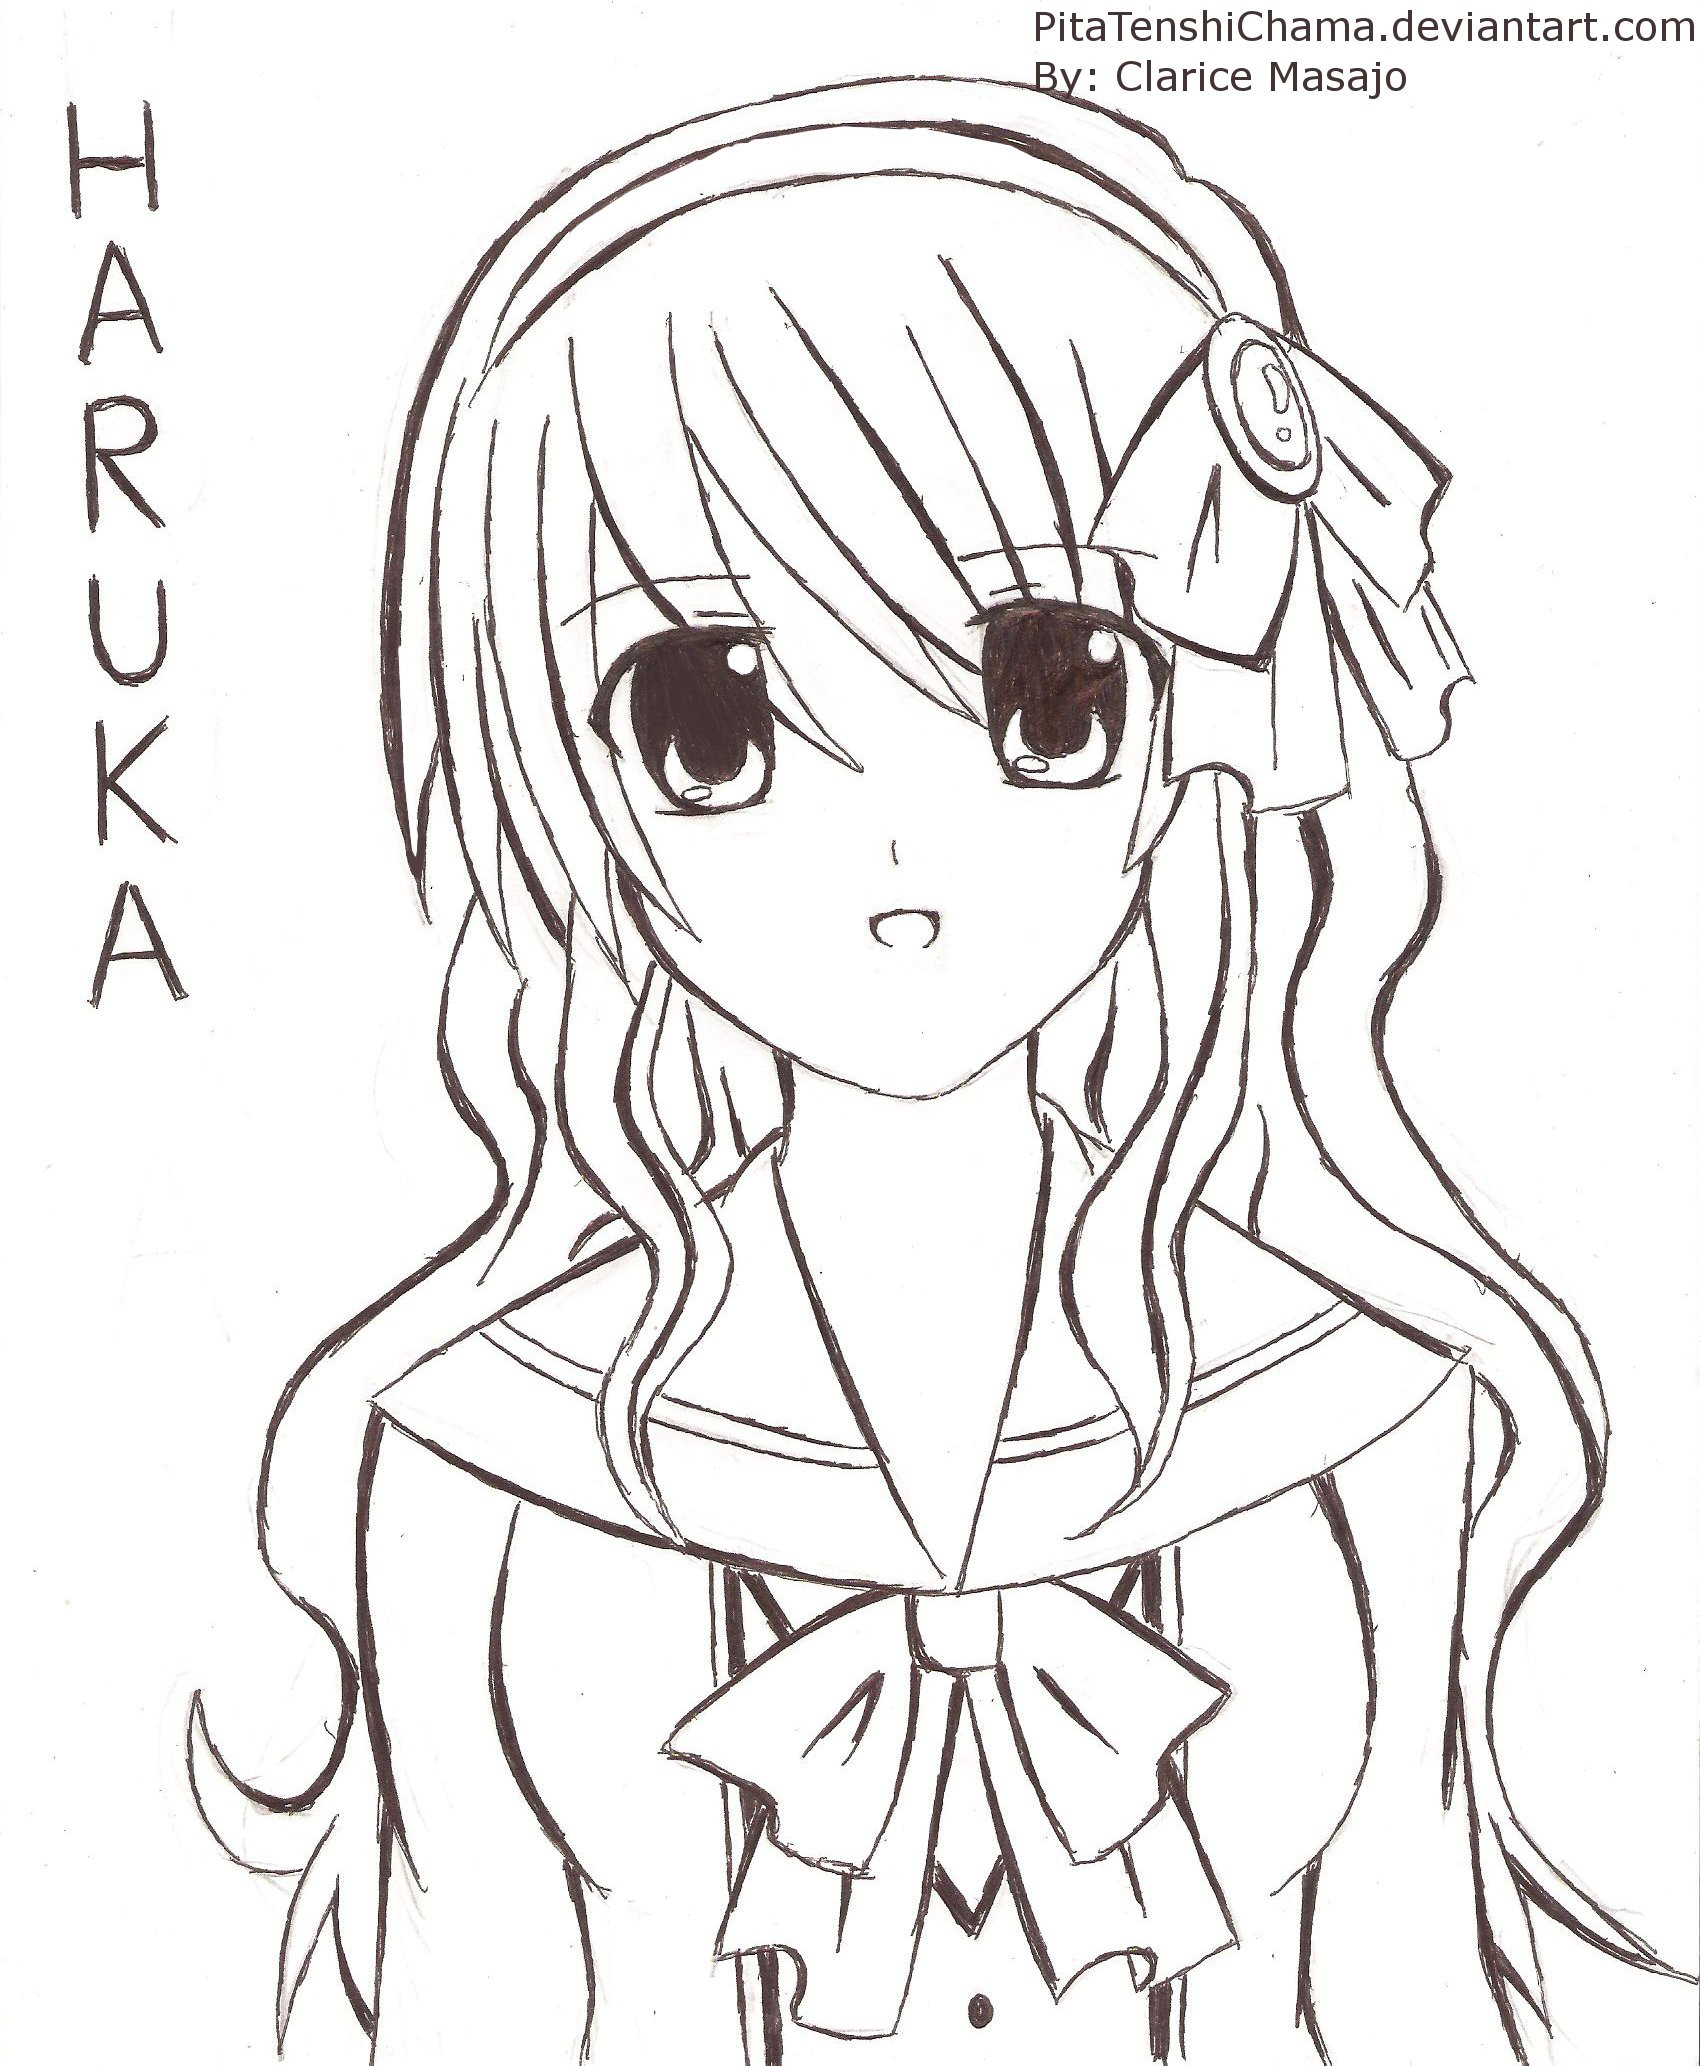 Best ideas about Anime Girl Hairstyles . Save or Pin Anime girl hairstyles drawings Hairstyle for women & man Now.